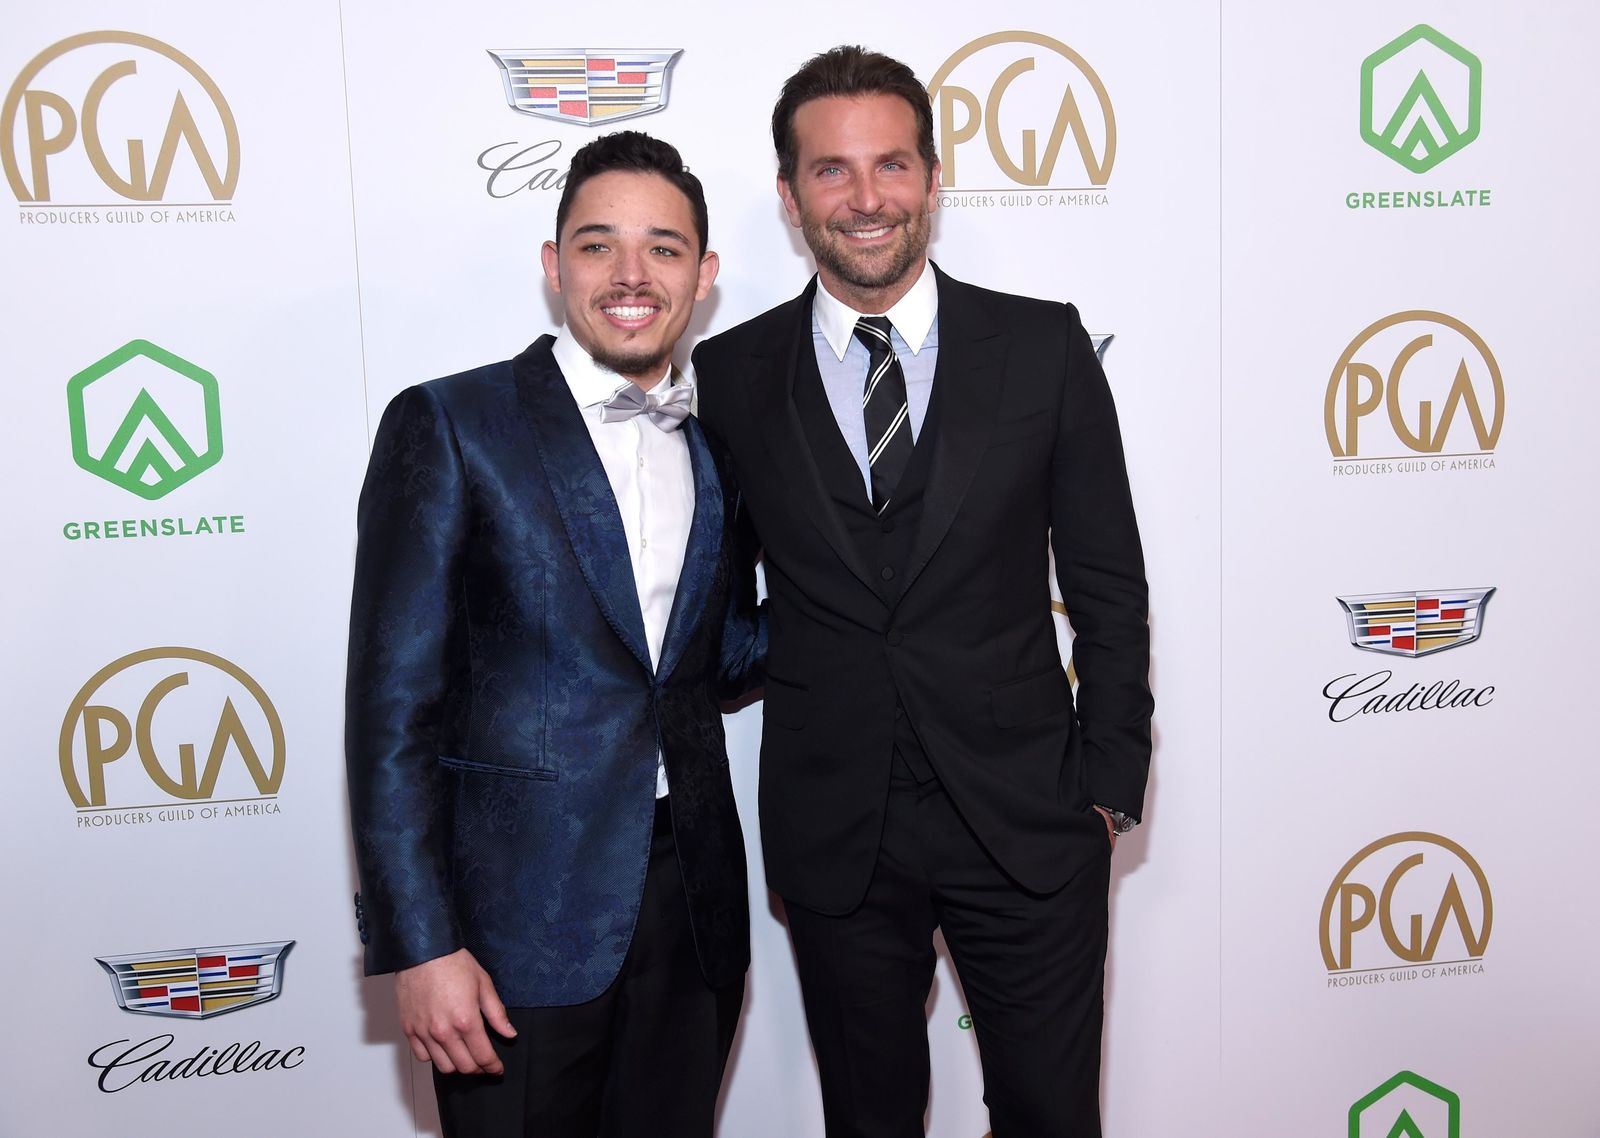 Anthony Ramos, left, and Bradley Cooper arrive at the Producers Guild Awards on Saturday, Jan. 19, 2019, at the Beverly Hilton Hotel in Beverly Hills, Calif. (Photo by Chris Pizzello/Invision/AP)